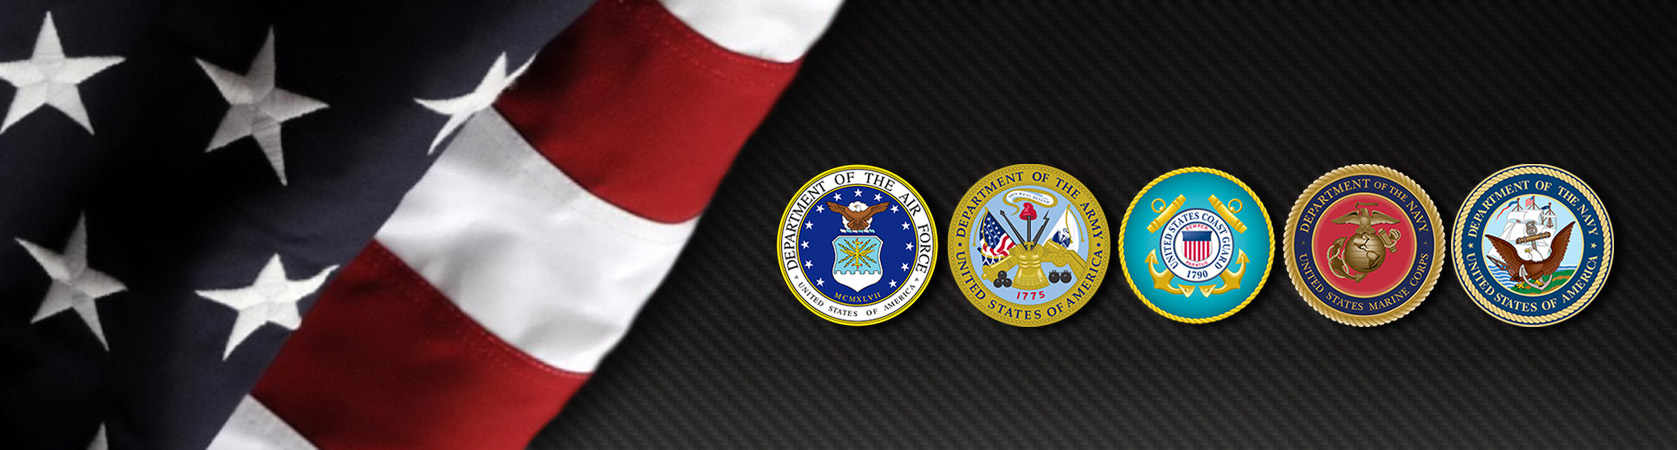 military-seals-banner